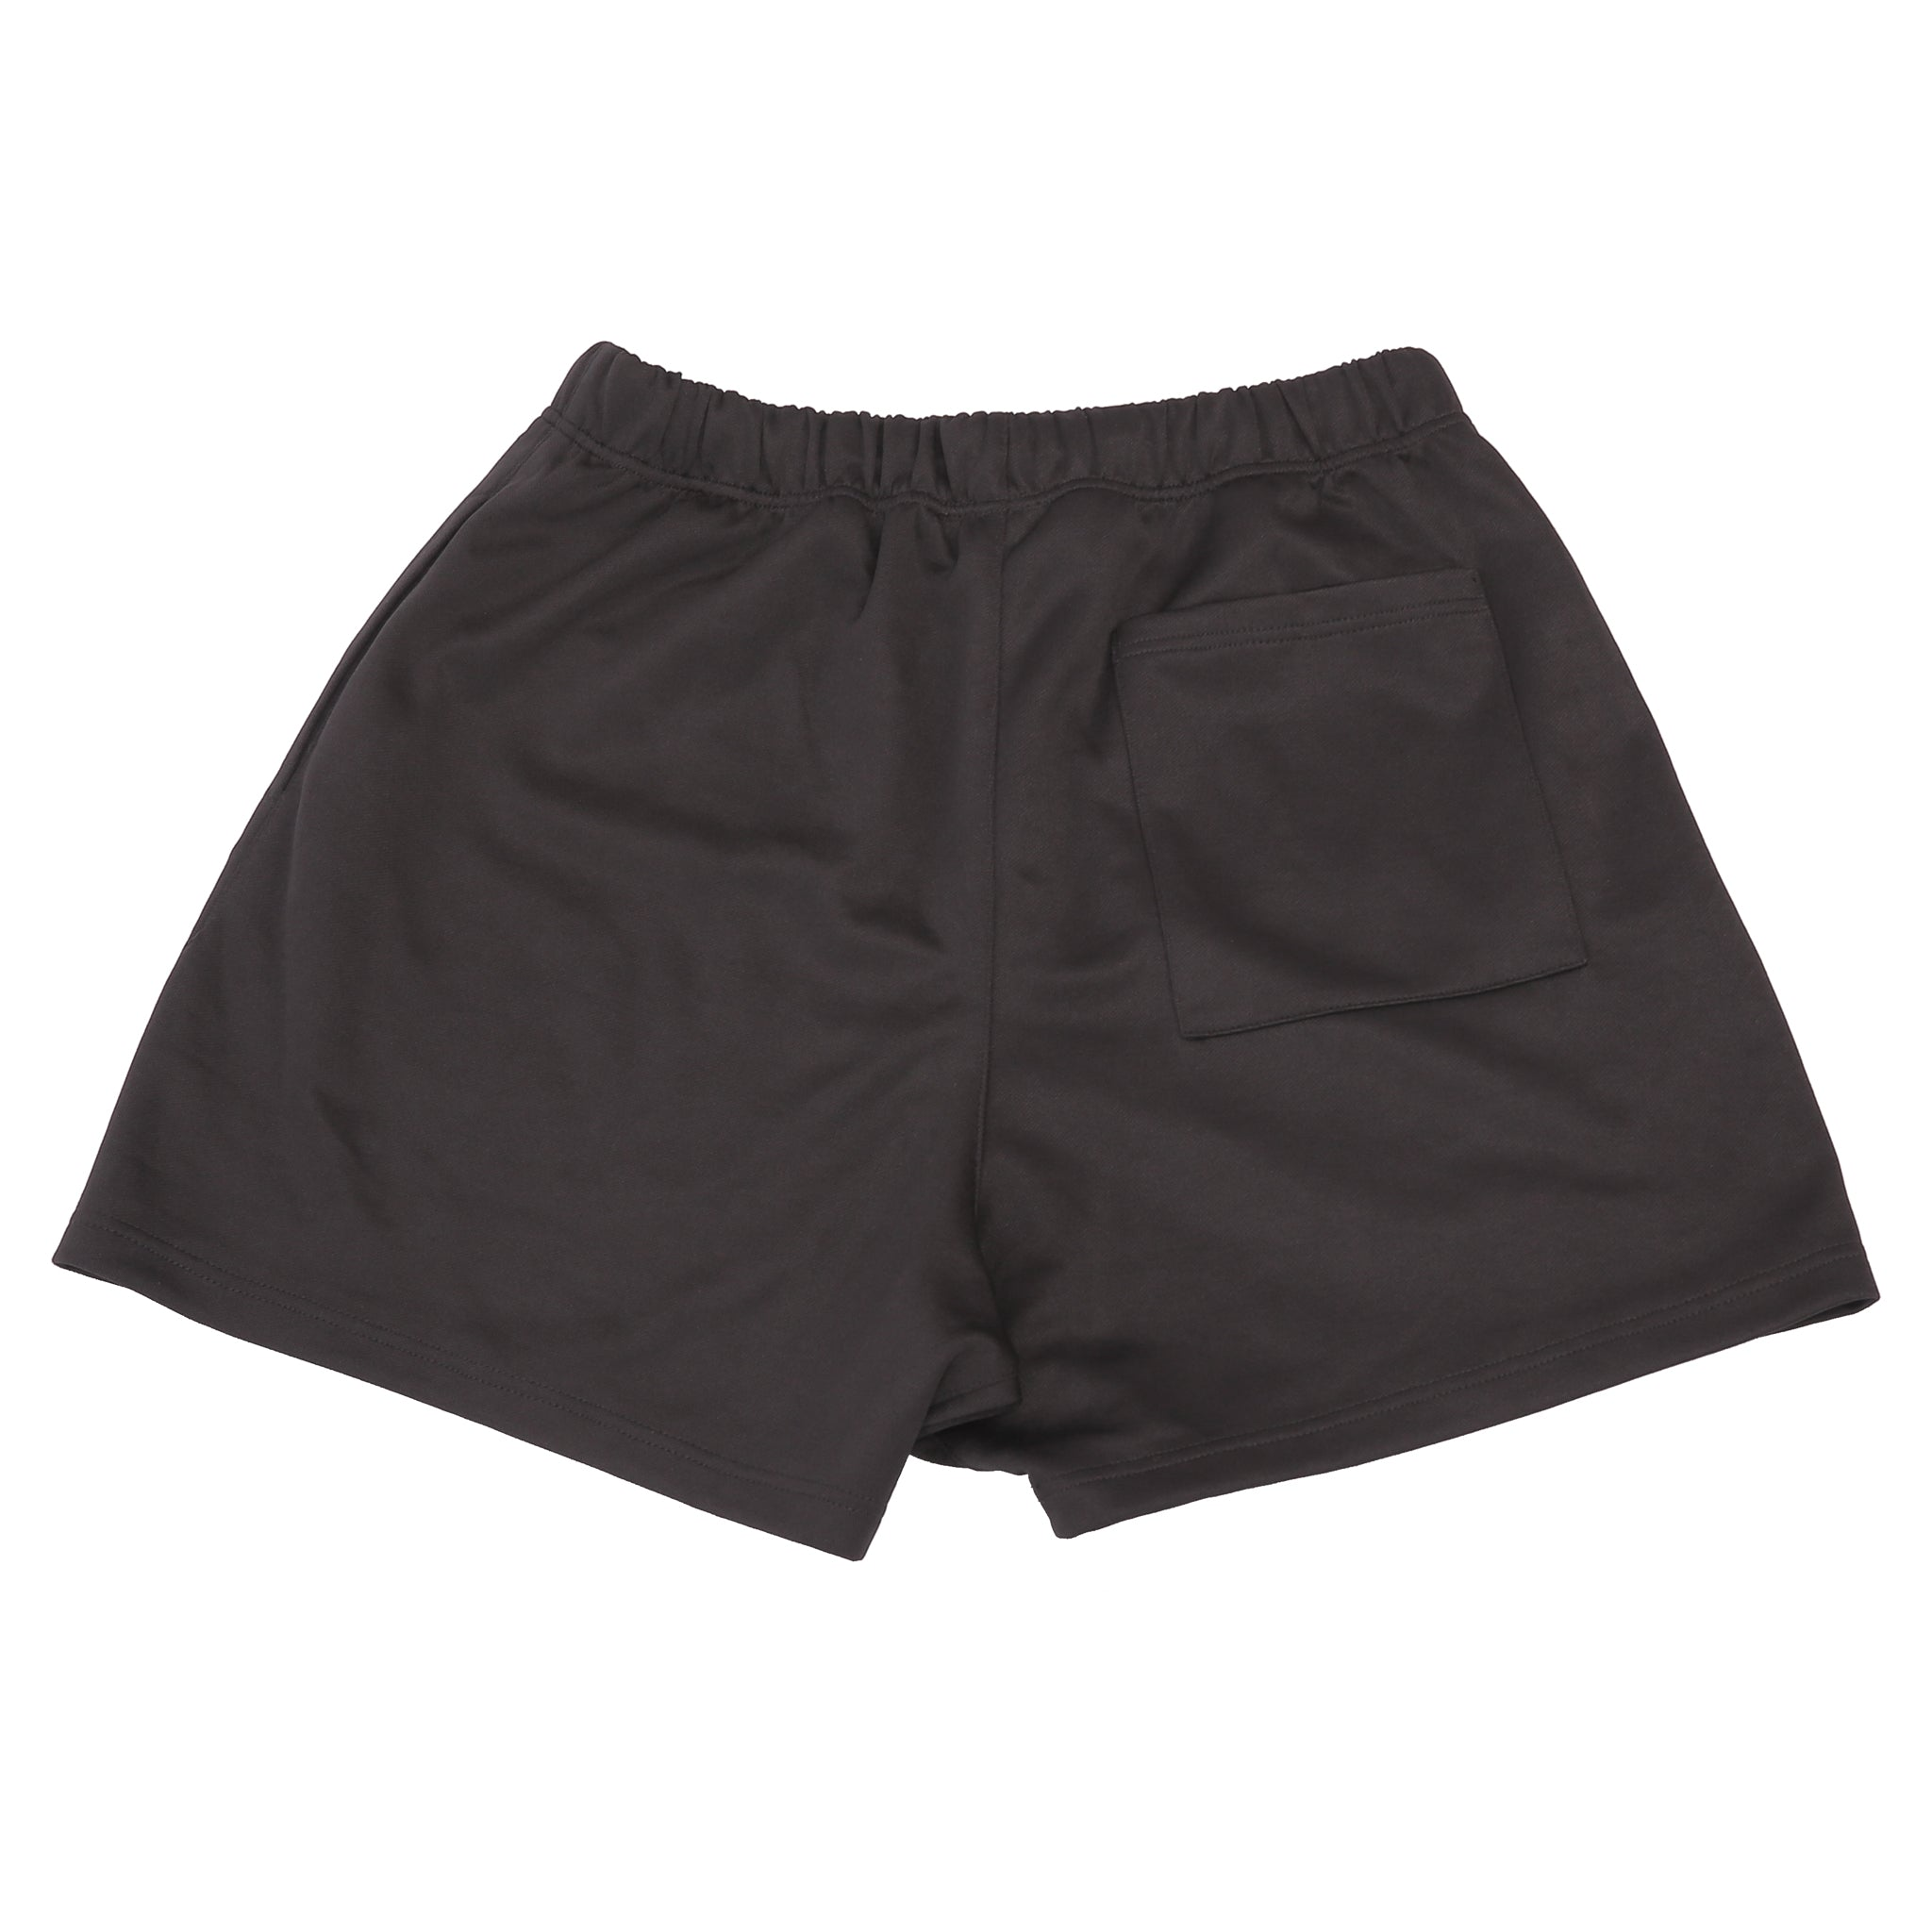 CHERRY DISCOTHEQUE - WORKOUT SHORTS